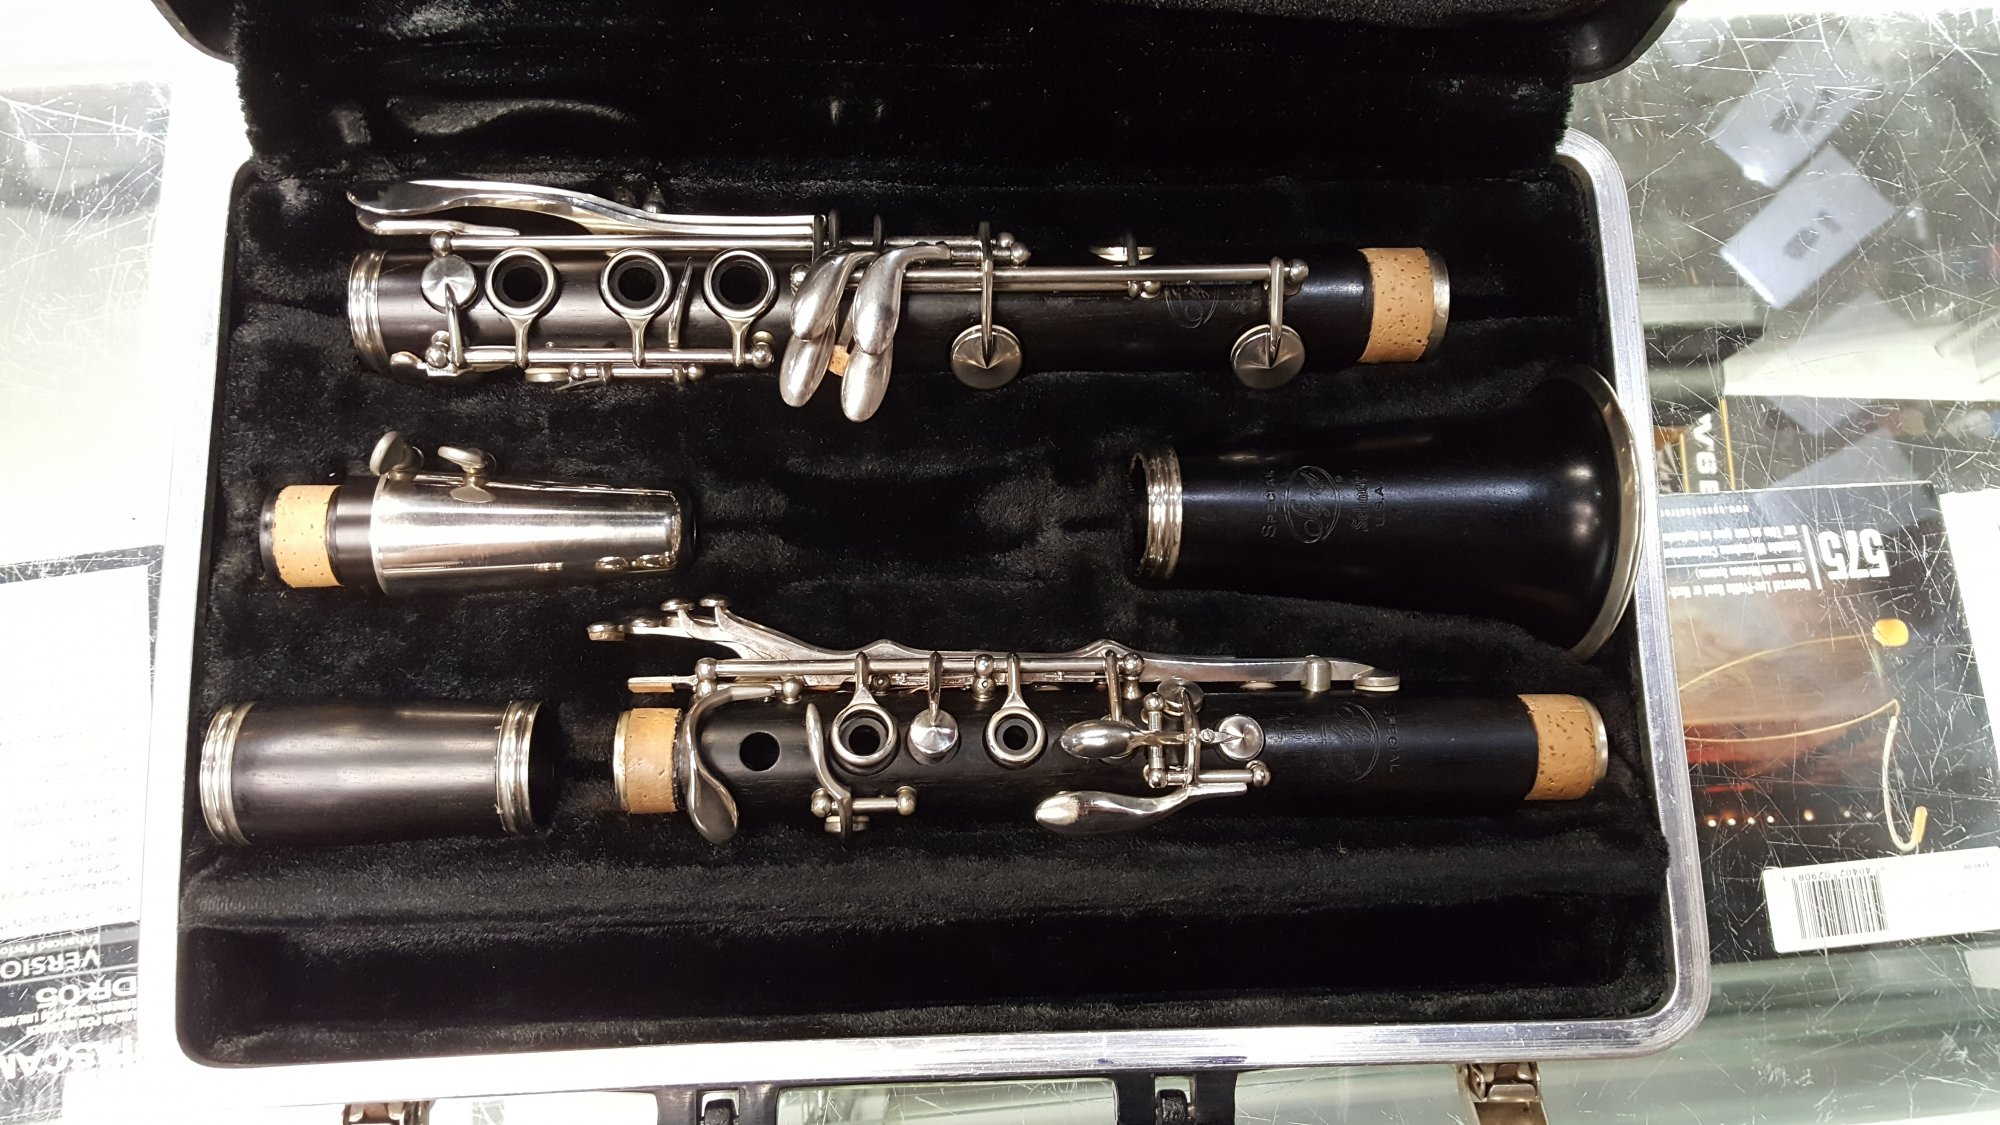 Used Selmer Signet Special Wooden Clarinet w/ Case, HS Star Mouthpiece